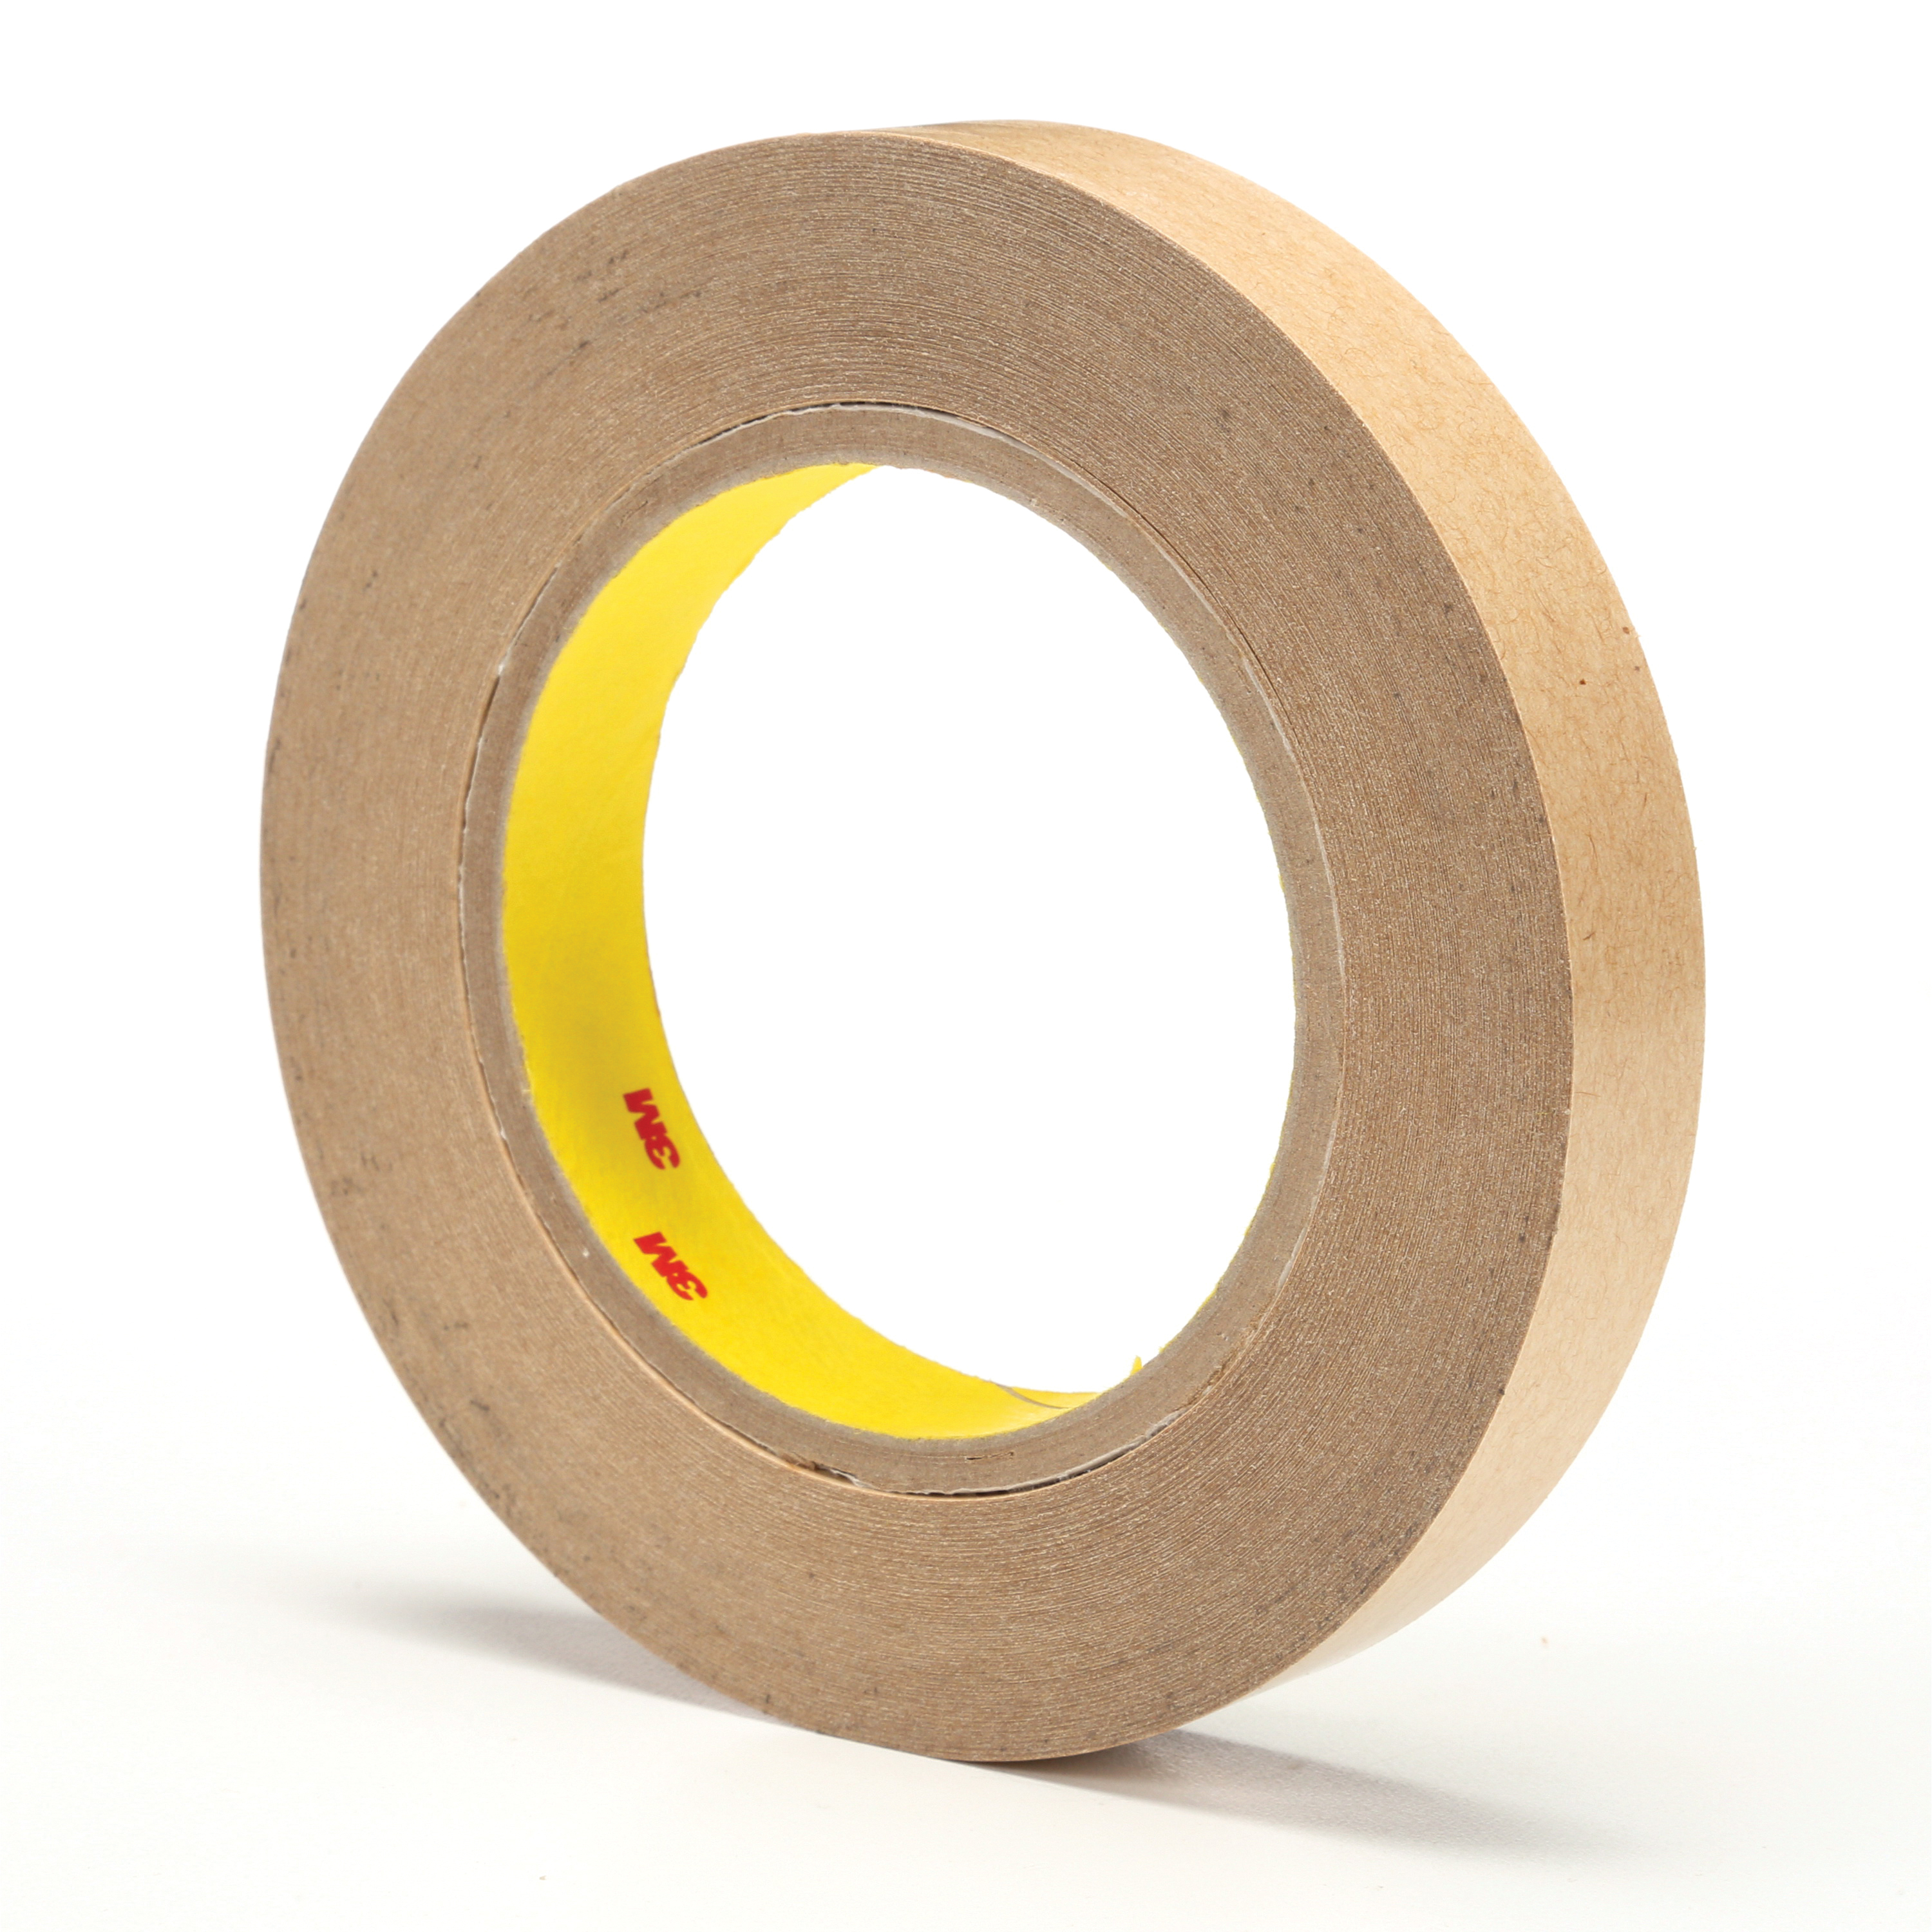 3M™ 021200-03336 465 Fibered General Purpose Adhesive Transfer Tape, 60 yd L x 3/4 in W, 2 mil THK, 2 mil 400 Acrylic Adhesive, Clear